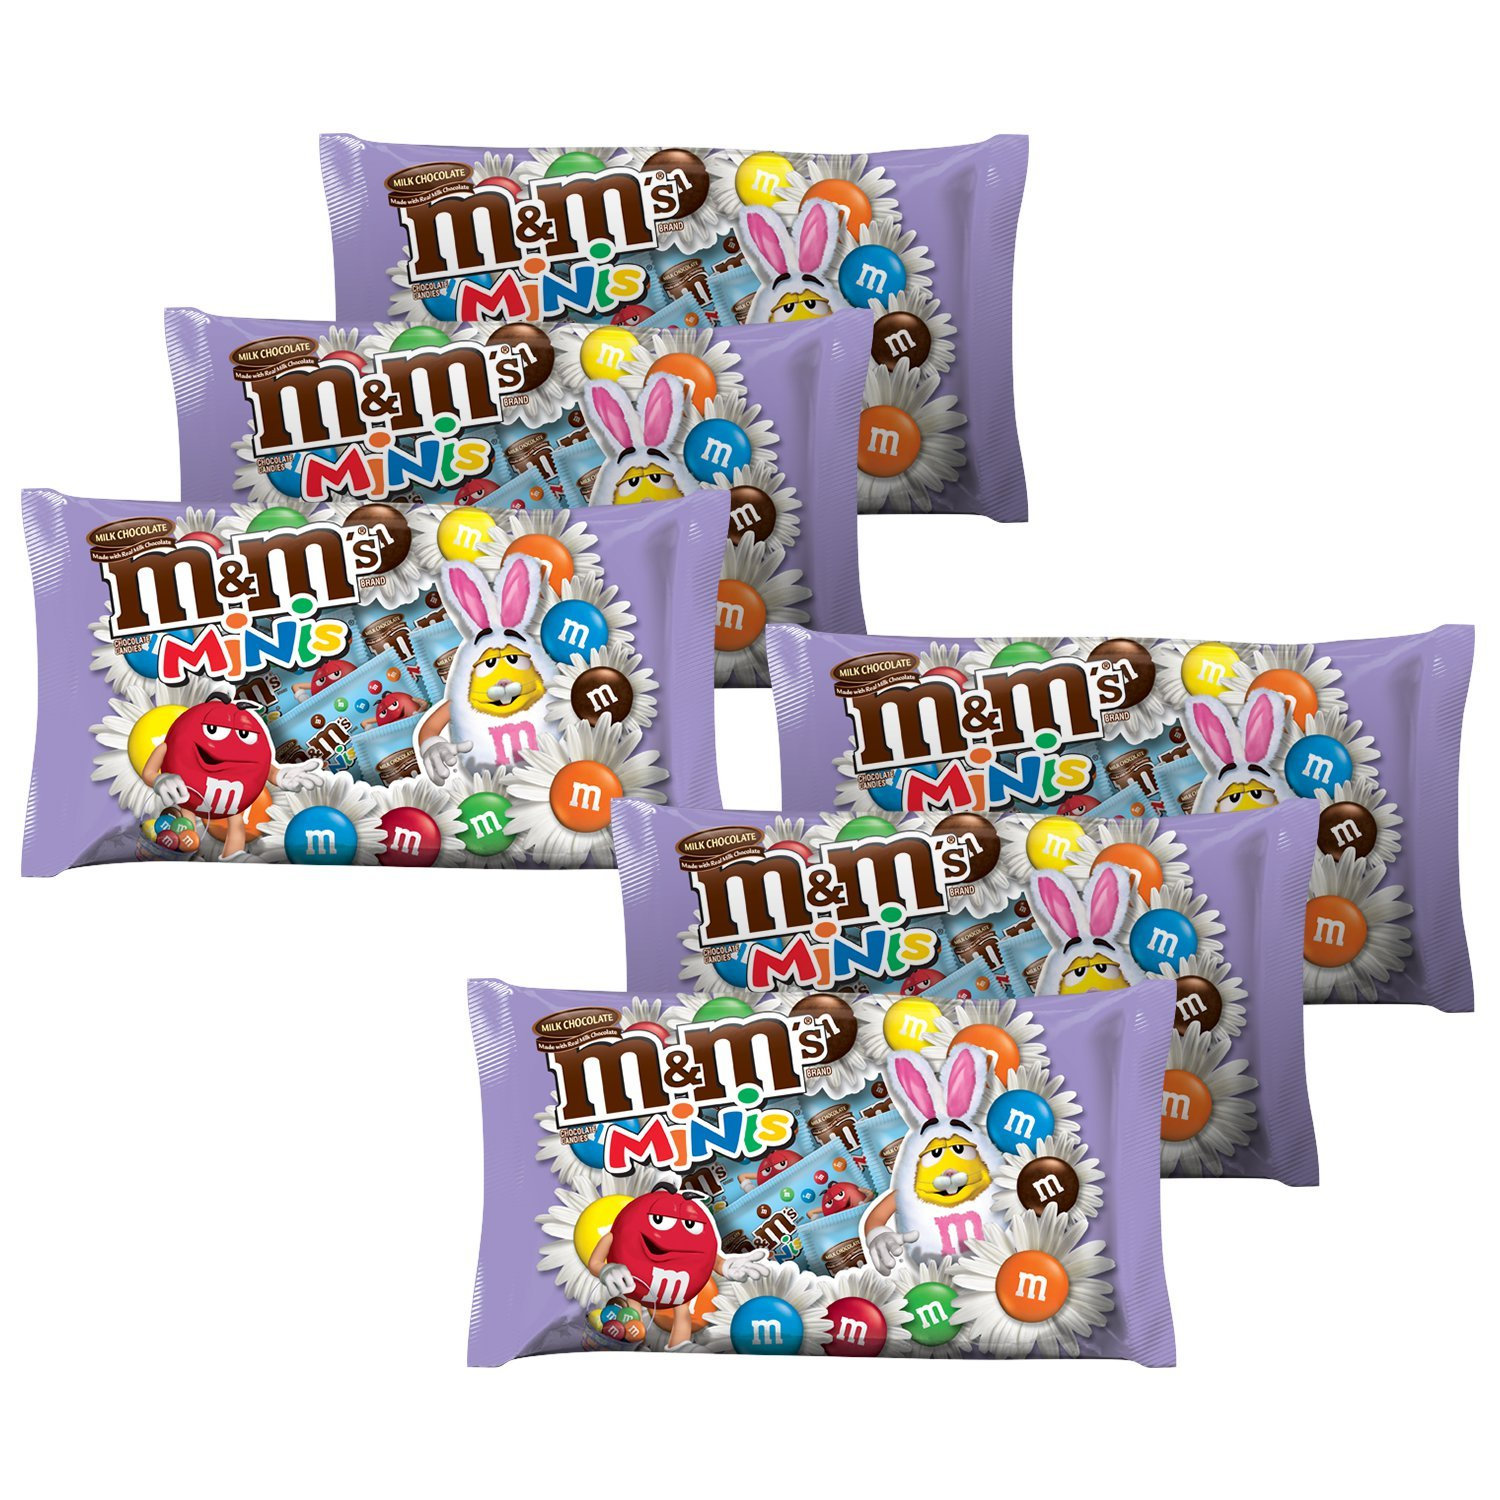 M&M's Minis Milk Chocolate Easter Candy